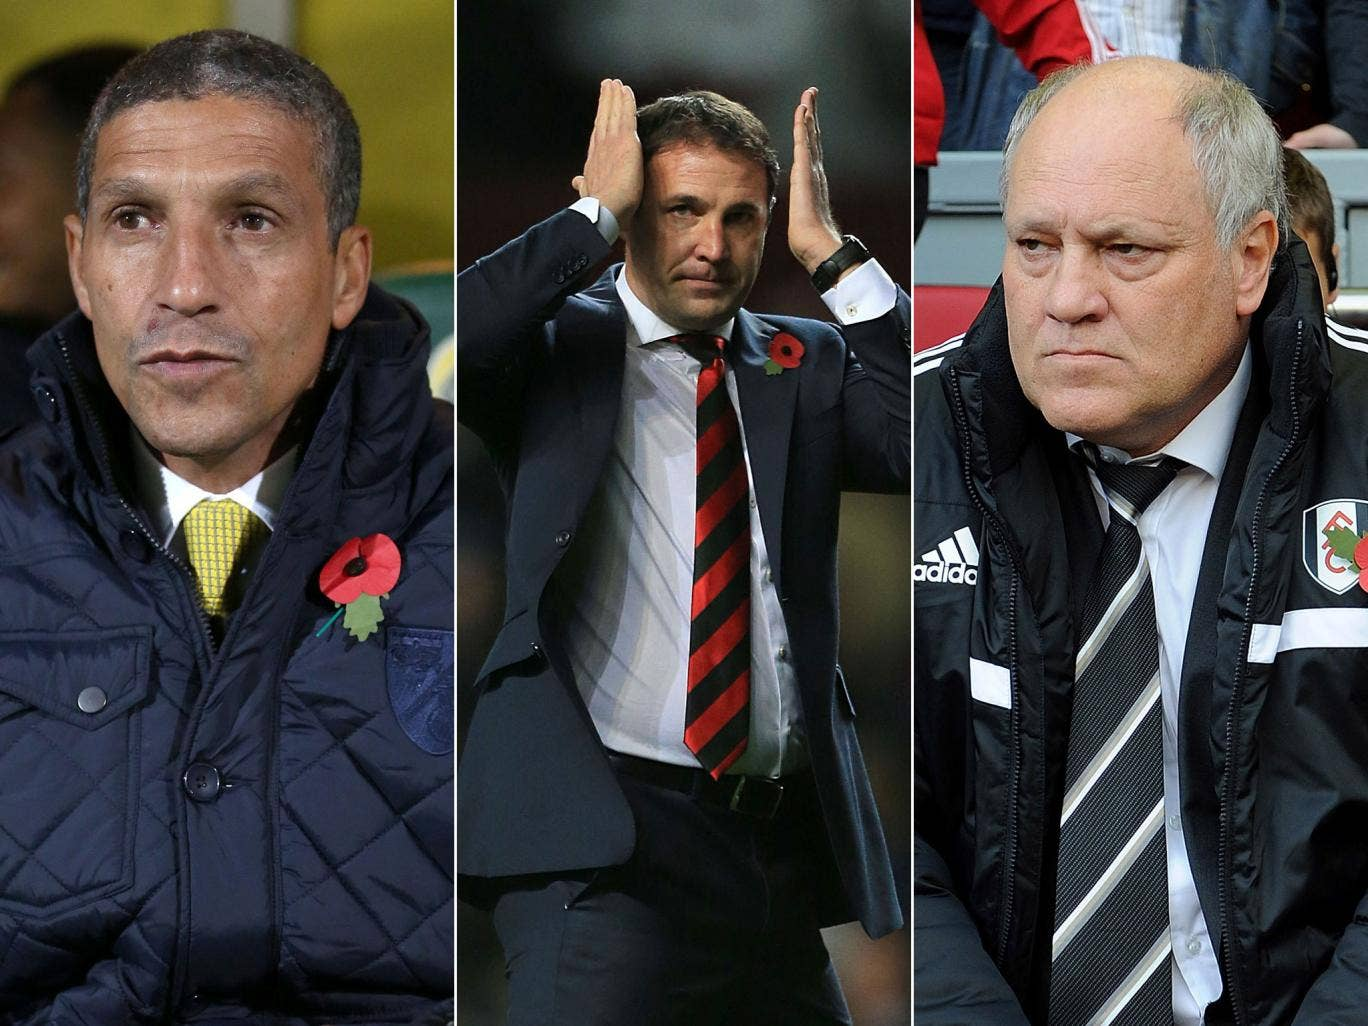 Managers in the firing line, from left, Chris Hughton of Norwich, Malky Mackay of Cardiff, and Fulham's Martin Jol